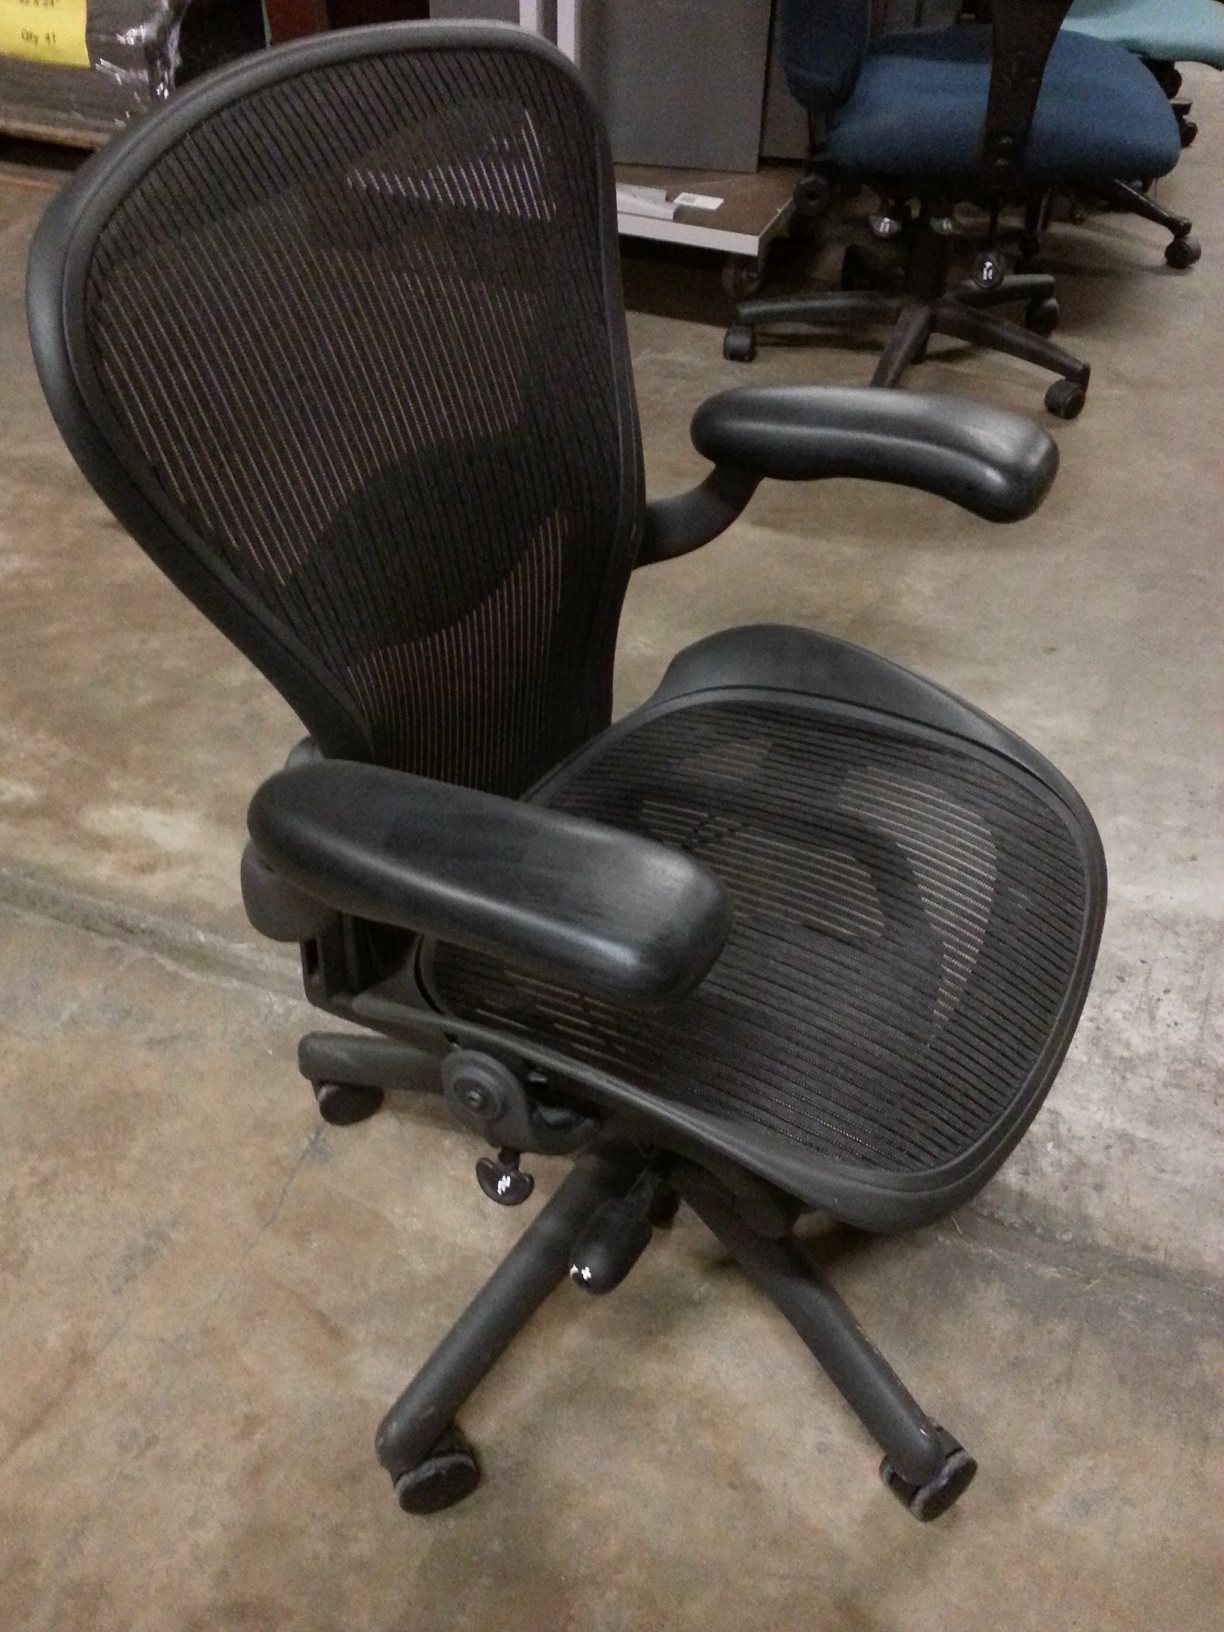 used office chairs orlando,used seating orlando,used task chairs fl